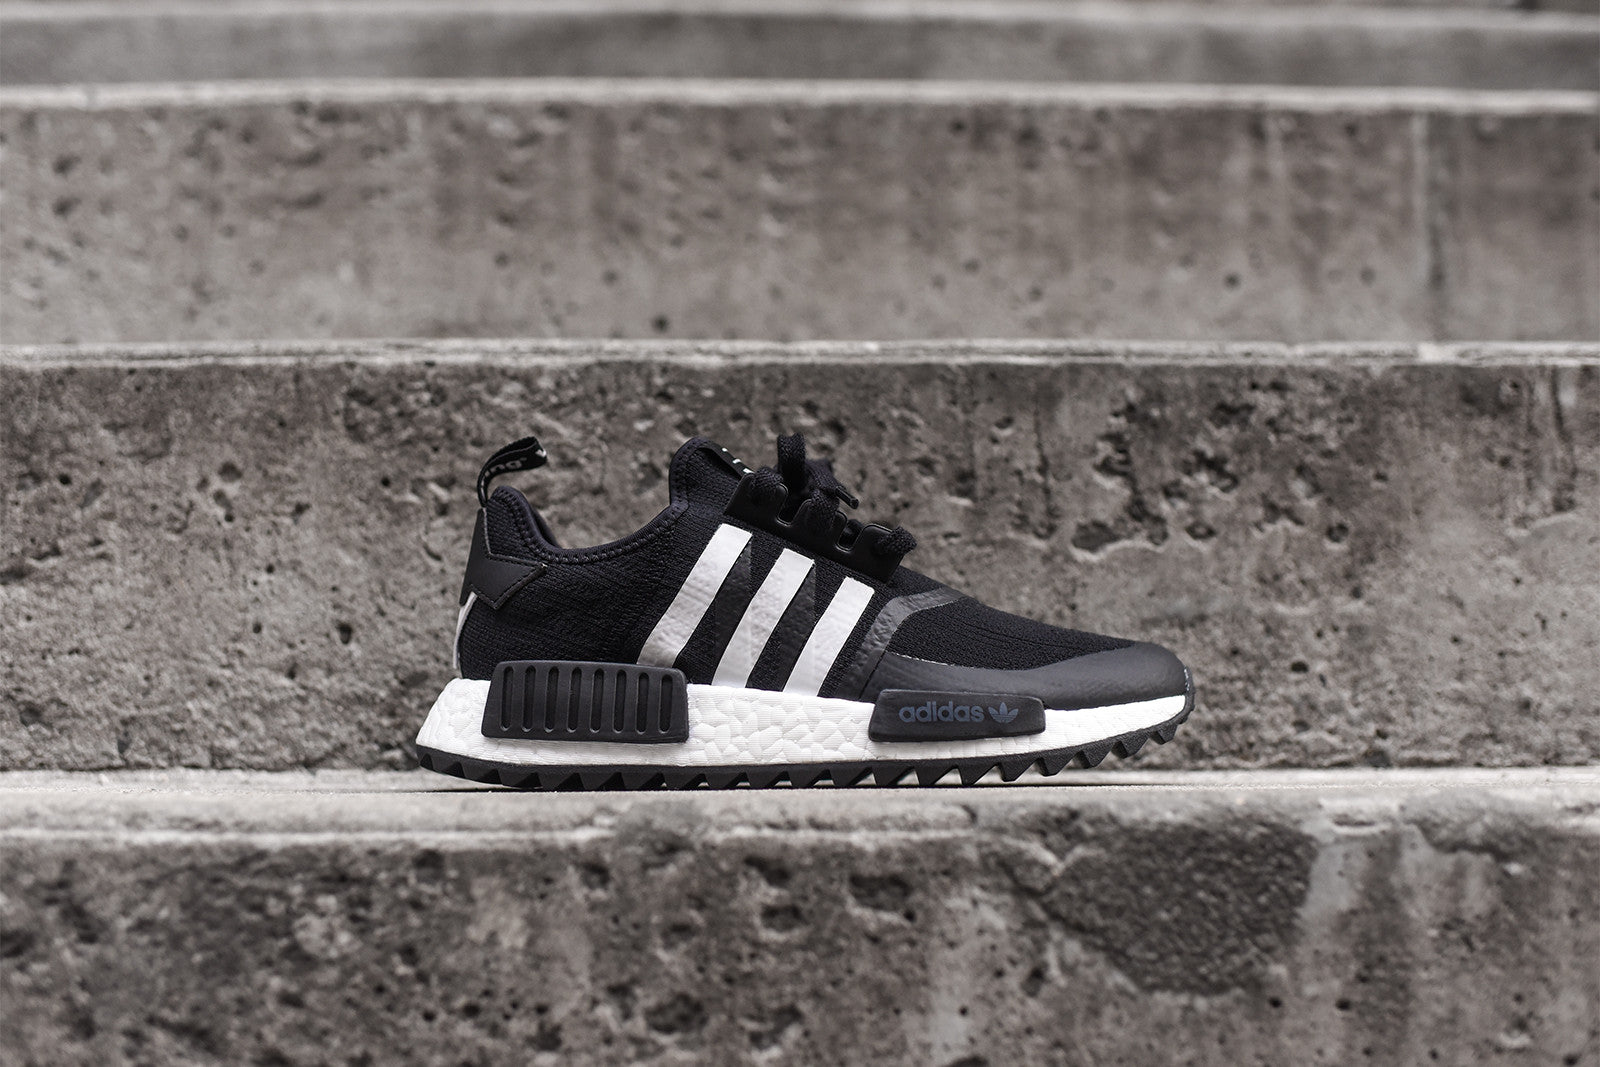 adidas x White Mountaineering NMD R1 Trail - Black / White